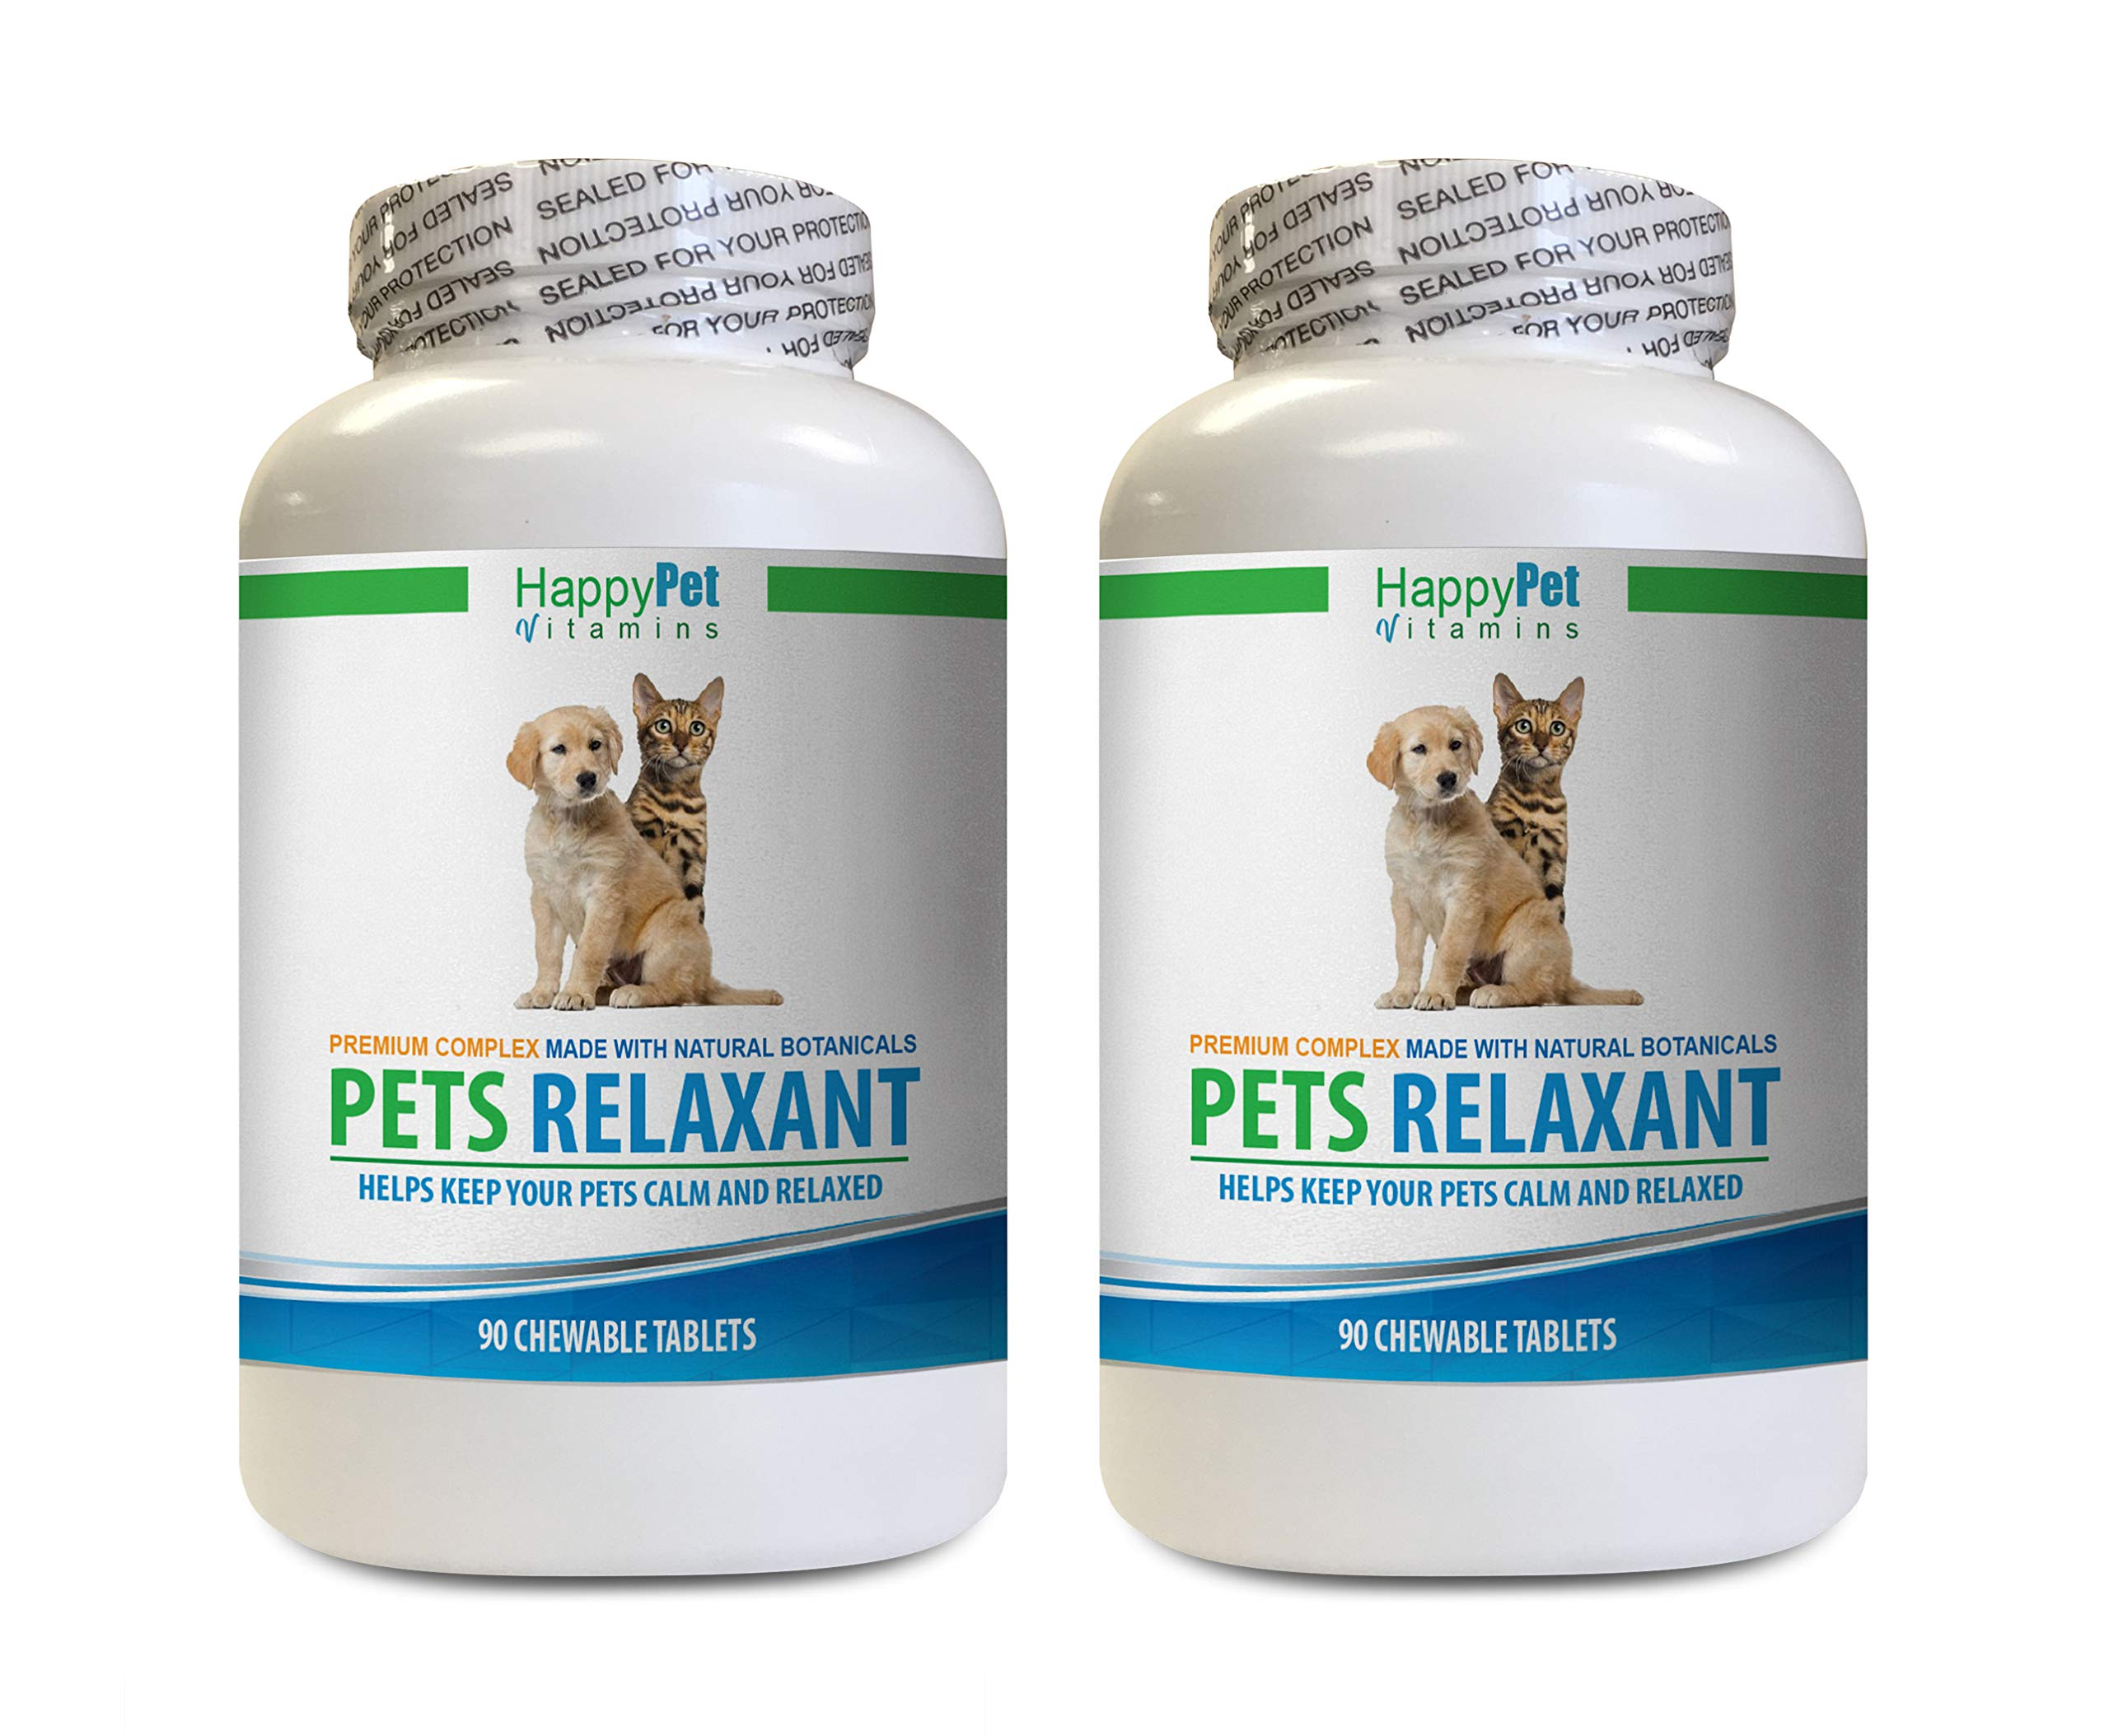 cat Stress Relief - PET Relaxant - Made for Dogs and Cats - Natural Anxiety and Stress Relief - Mood Boost - Best Formula - cat Anxiety Products - 2 Bottles (180 Treats) by HAPPY PET VITAMINS LLC